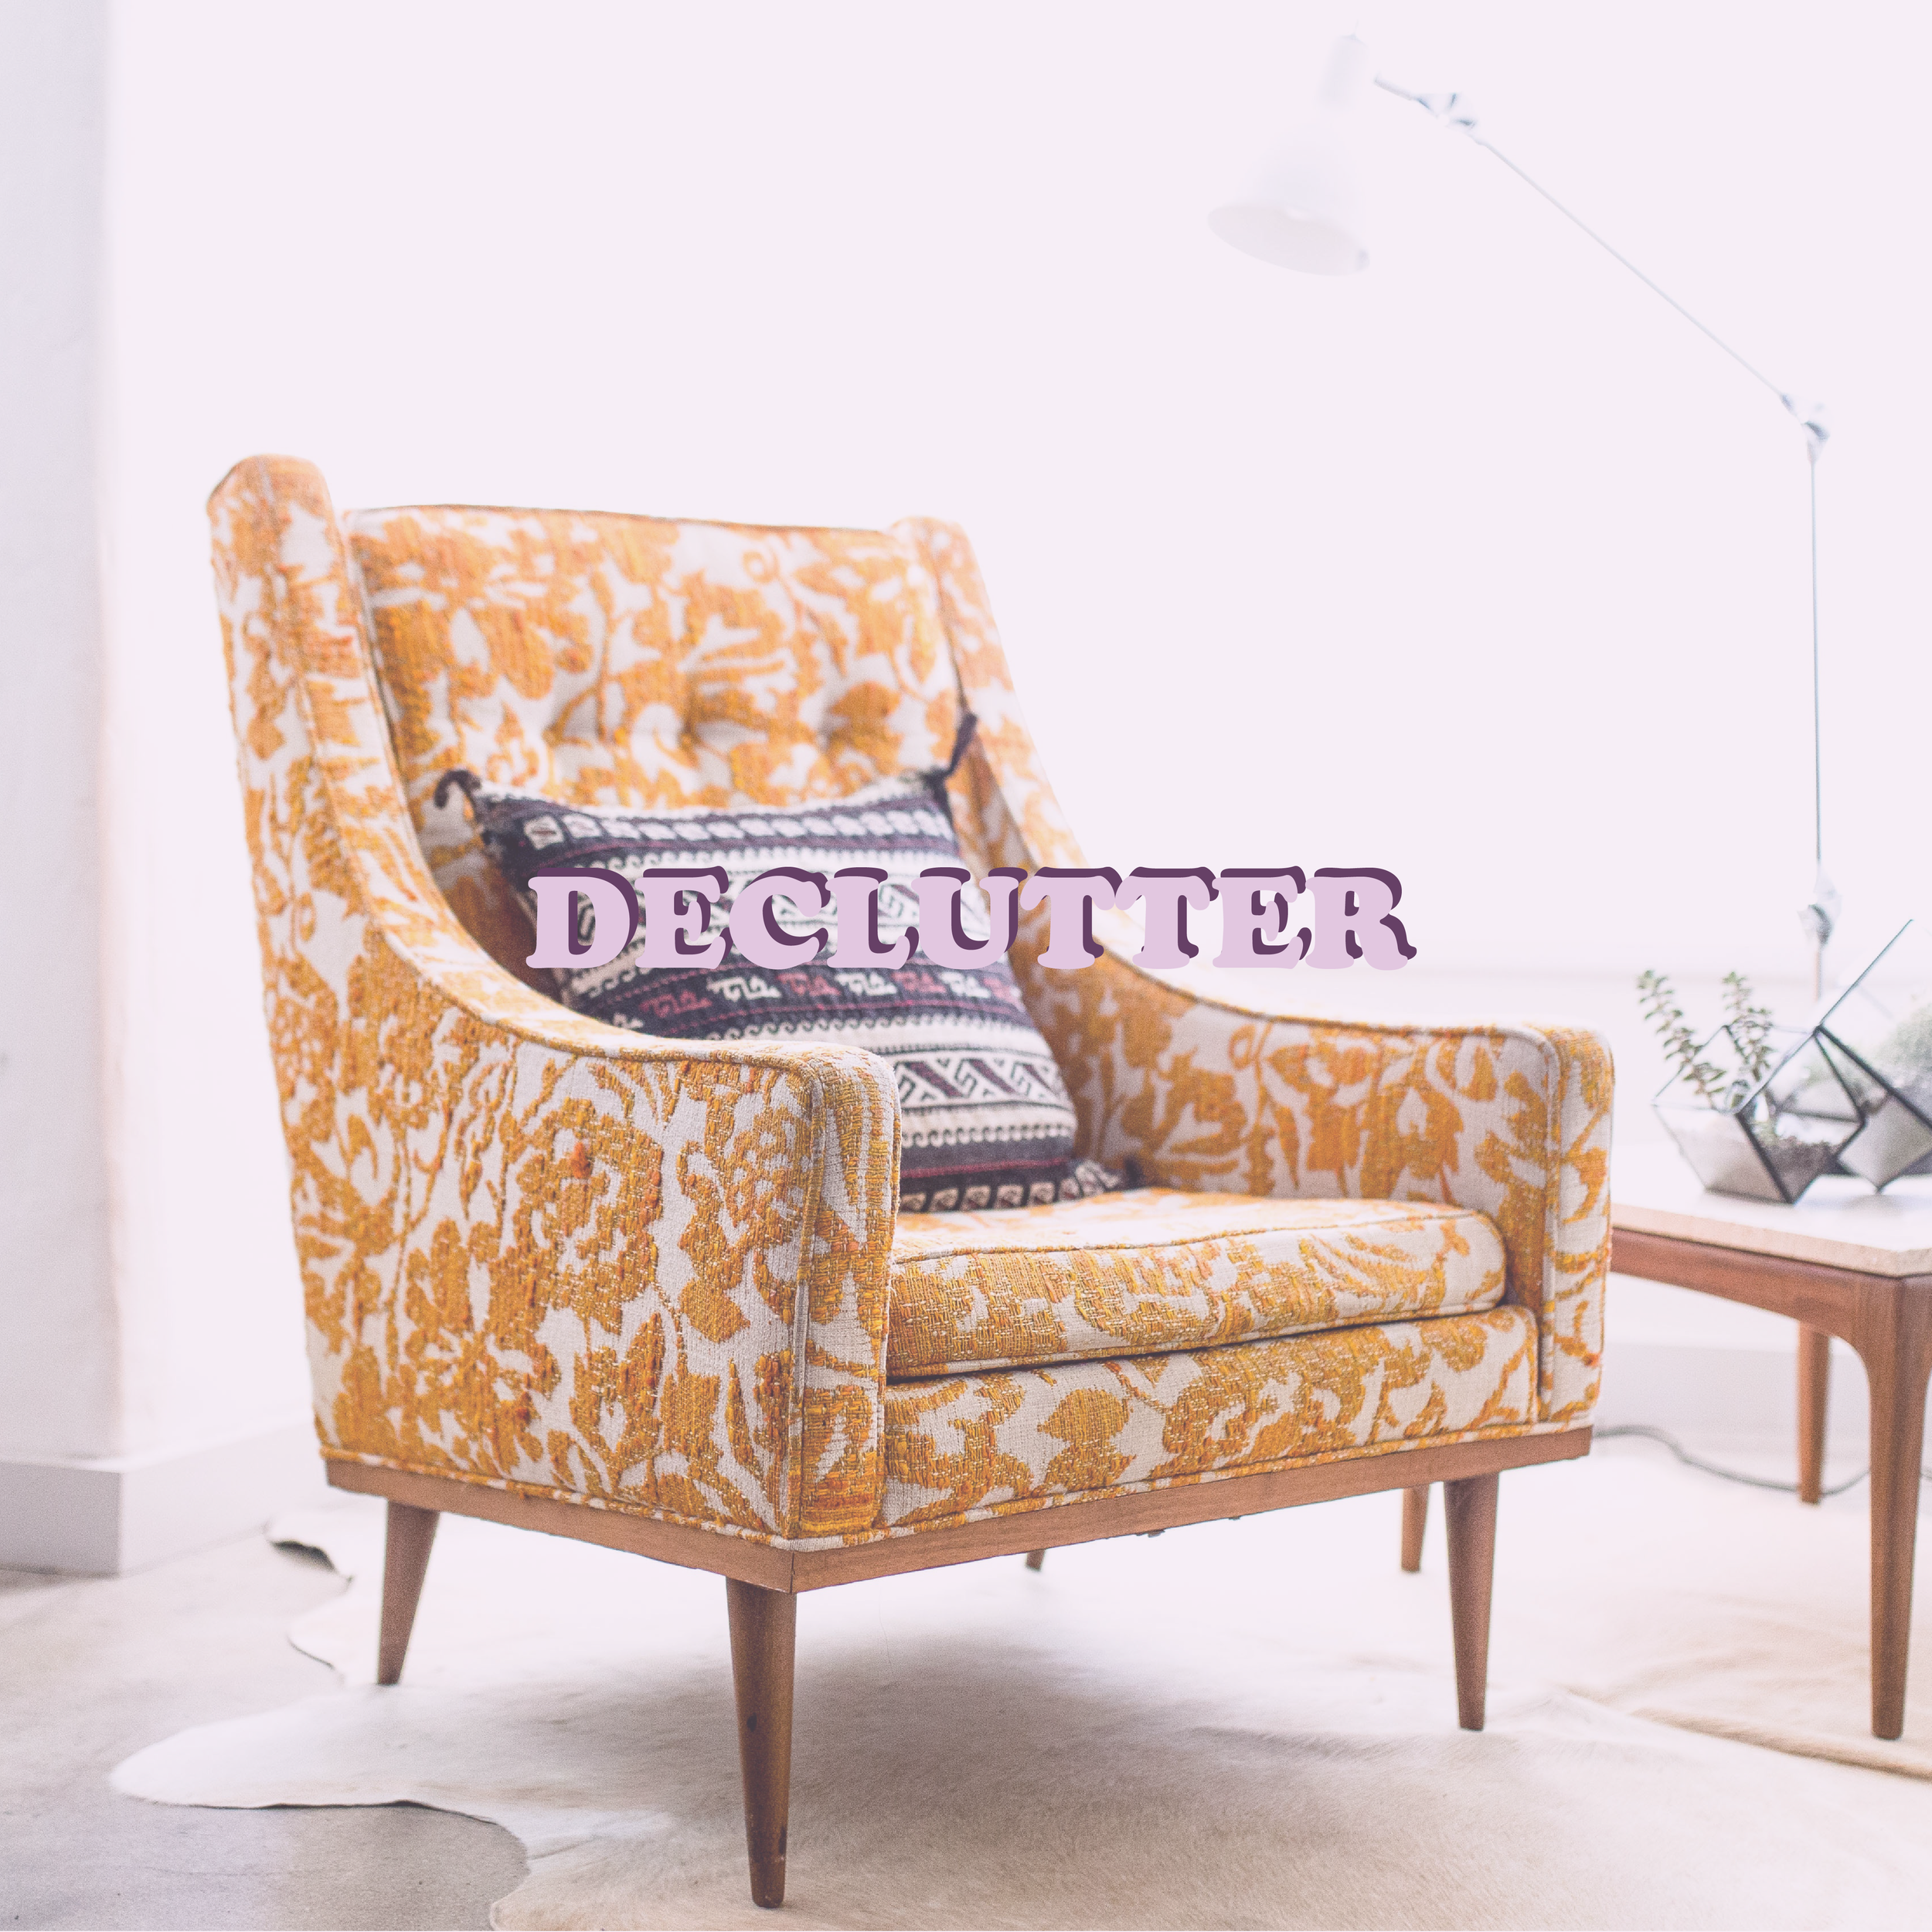 Declutter | Book an In-Home Session or Take a Class with Genevieve Nalls, The Classy Hippie